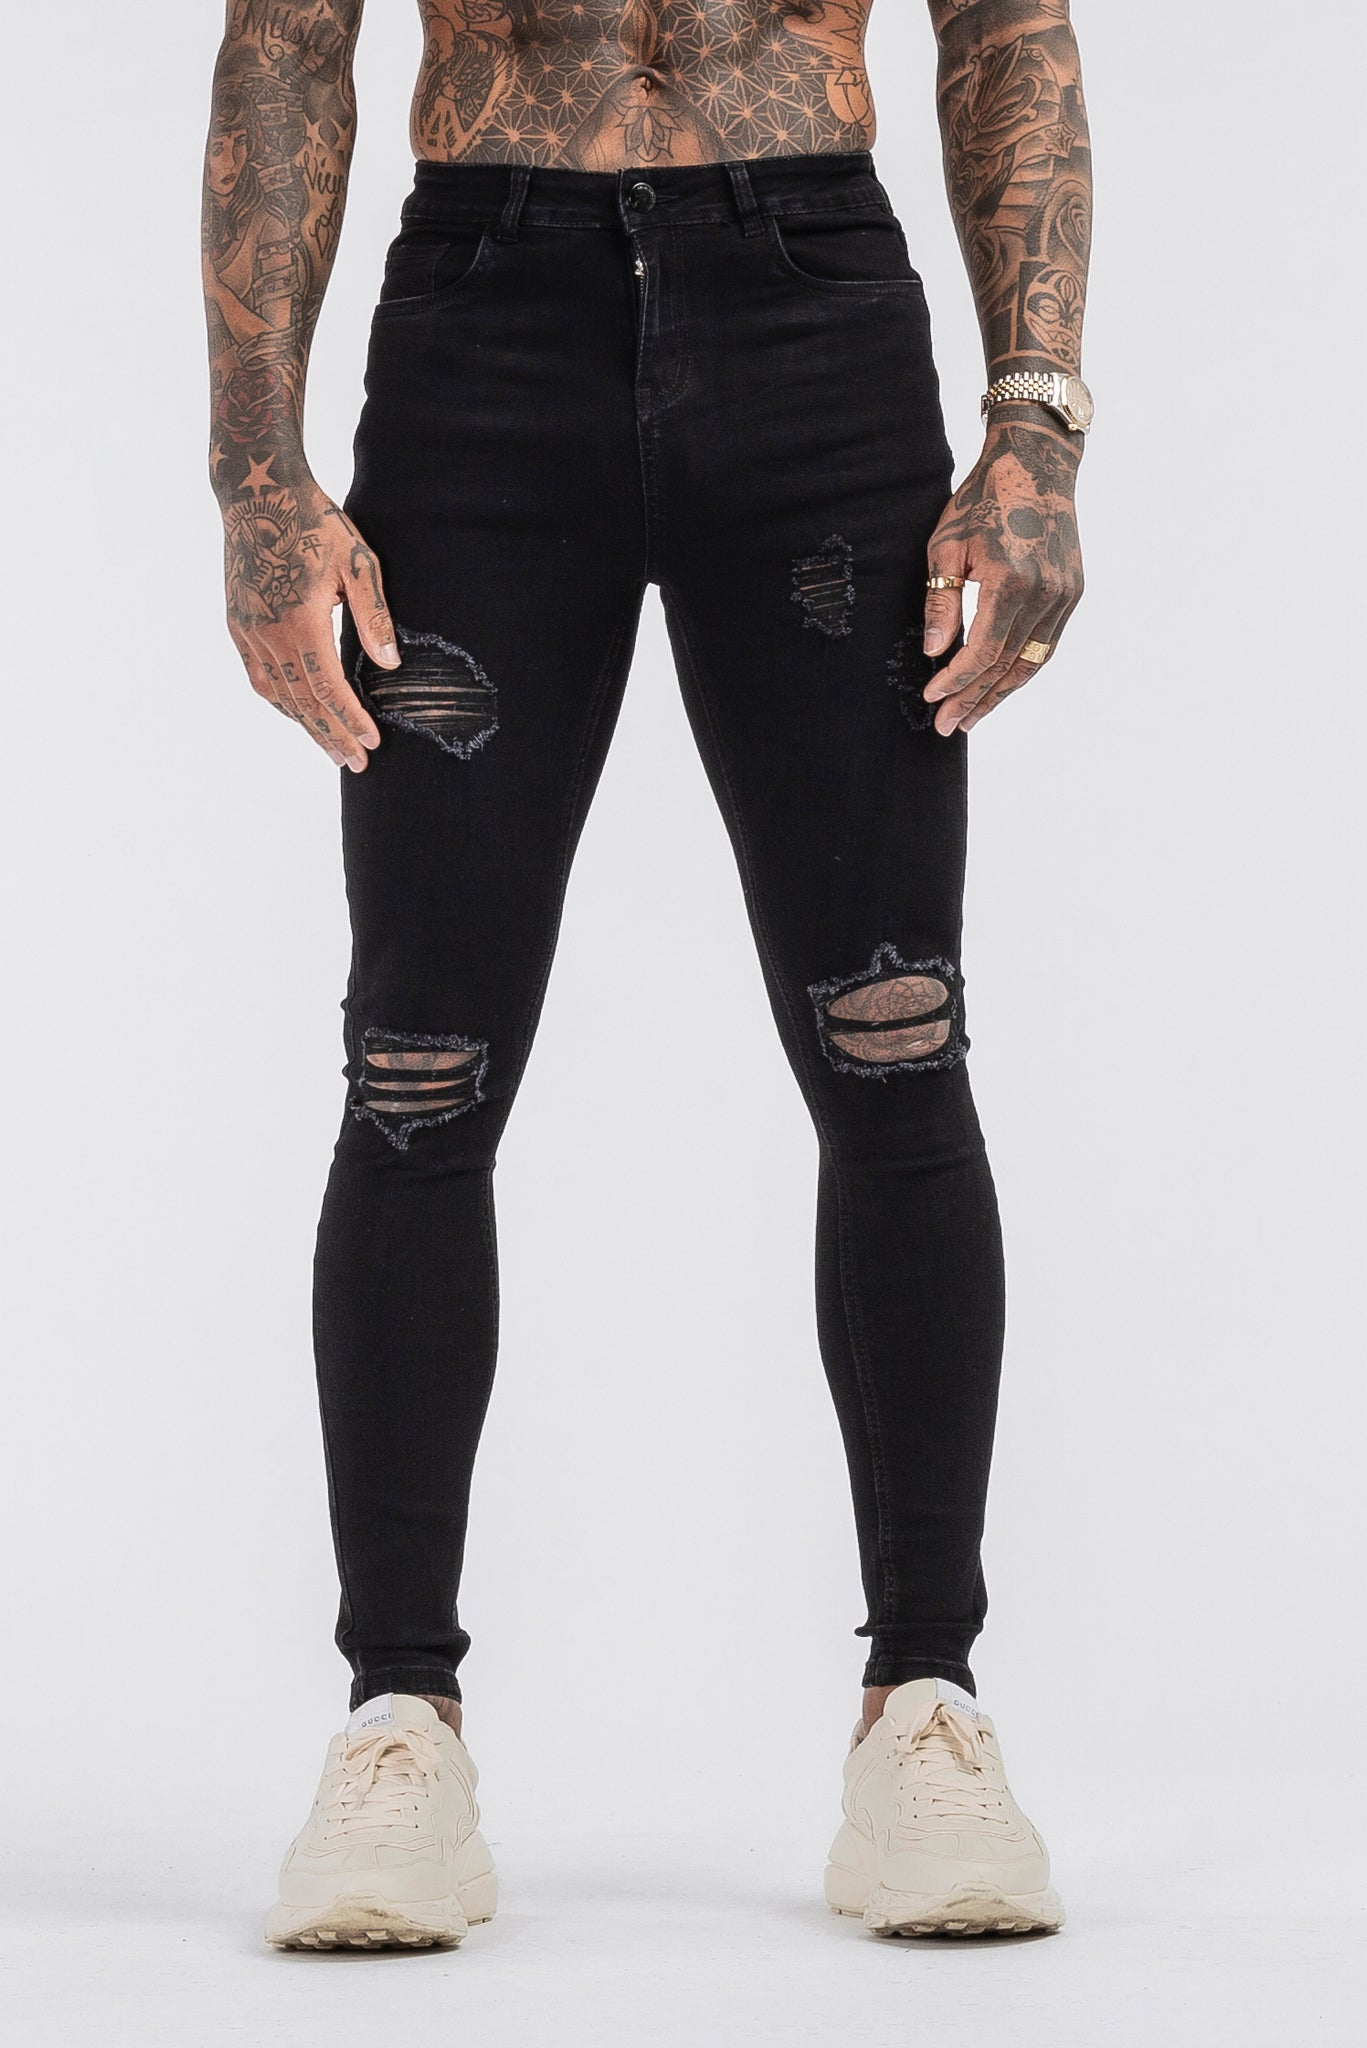 THE SAVAGE JEANS - BLACK